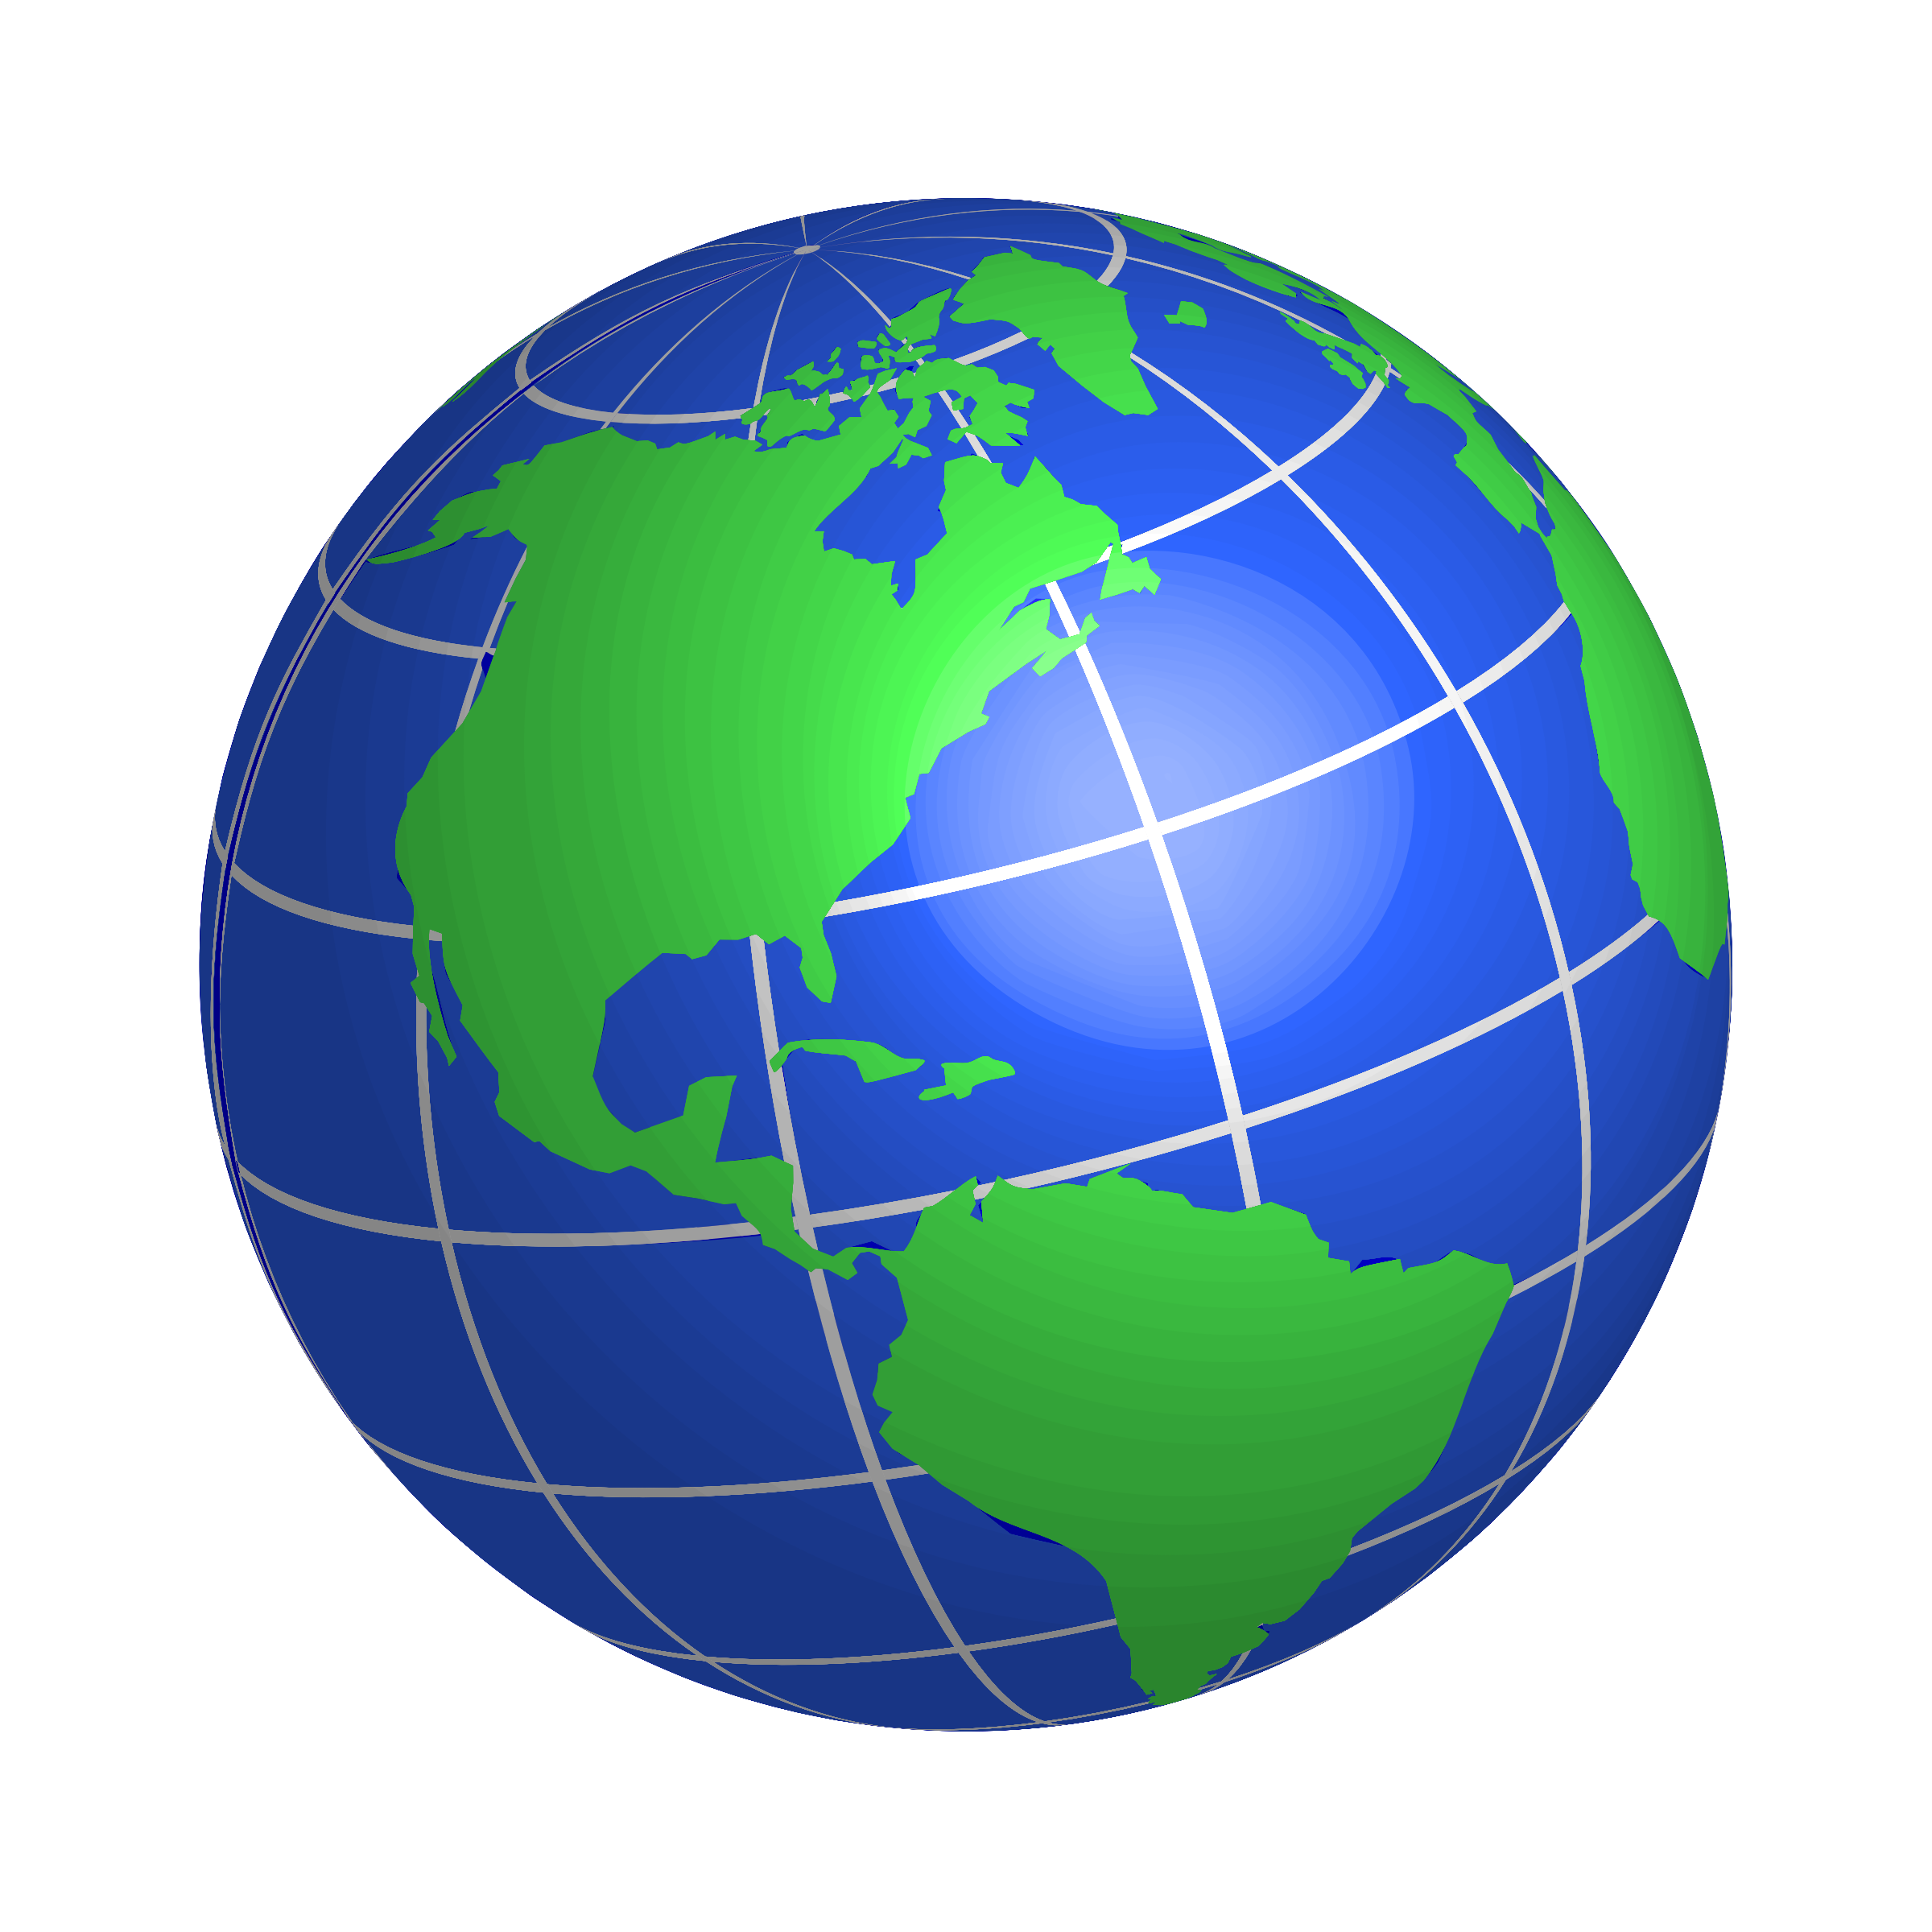 Globe clipart images - .